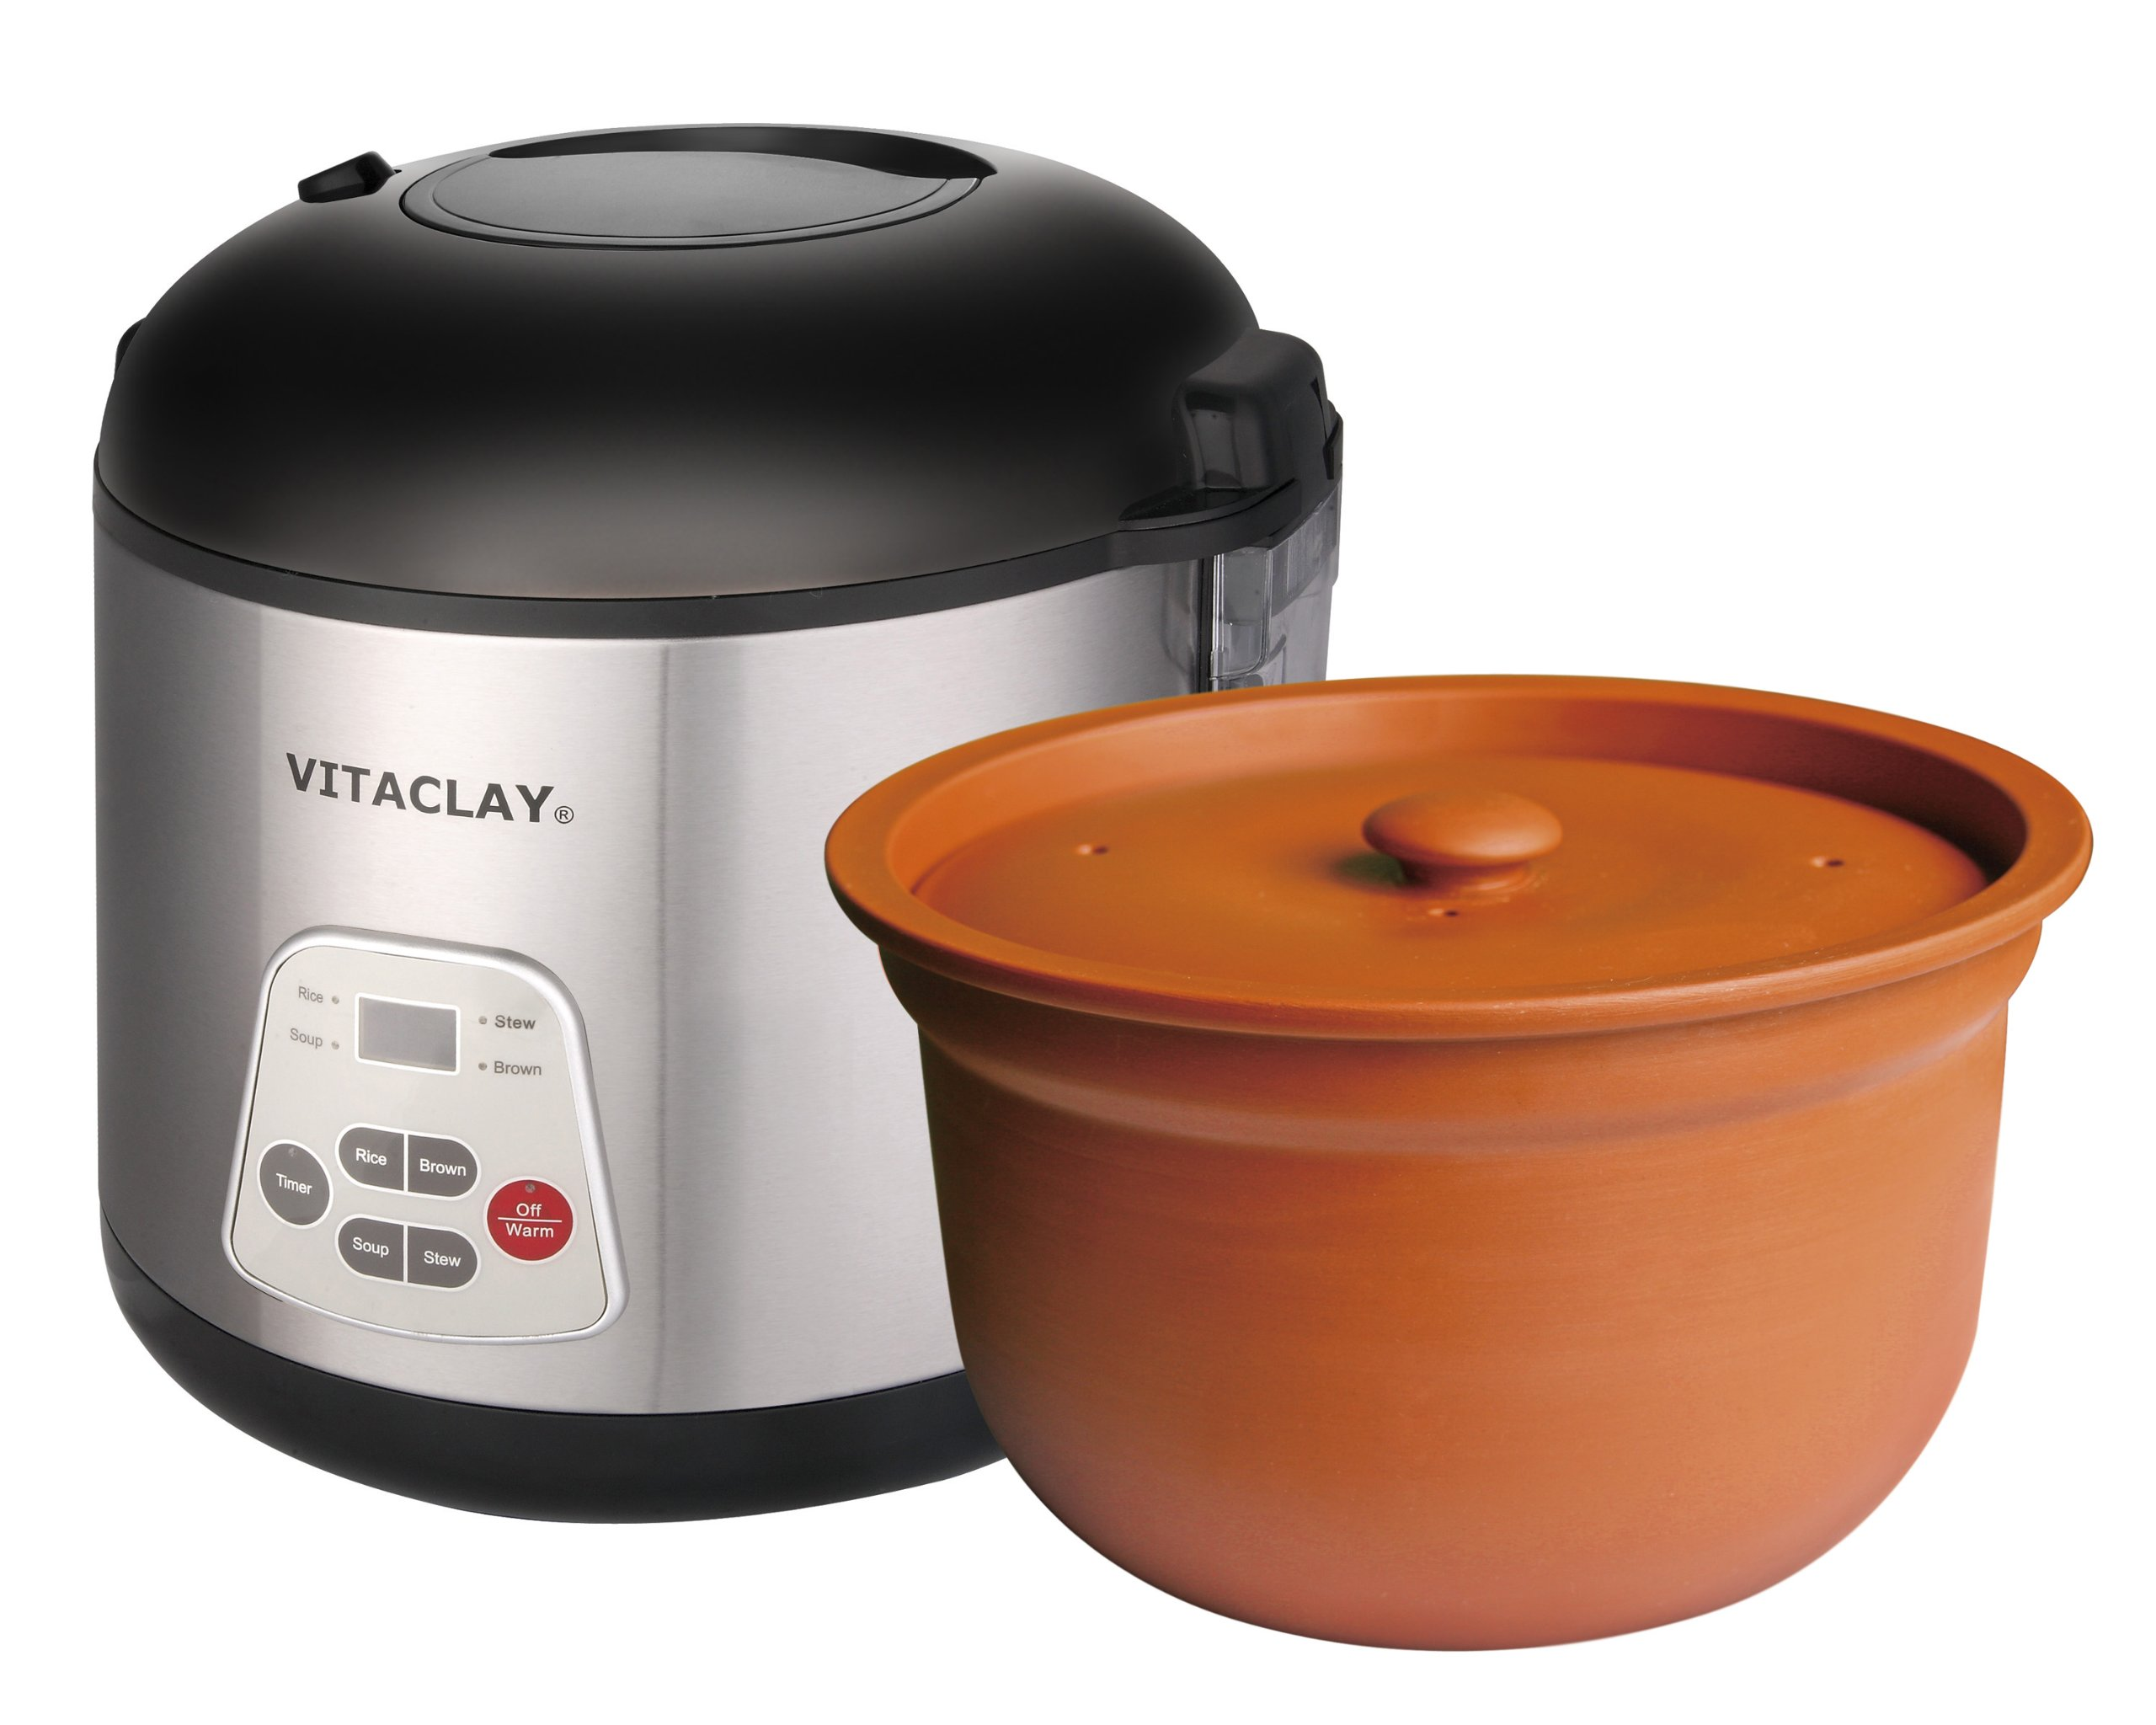 High-Fired VitaClay 2-in-1 Rice N Slow Cooker in Clay Pot